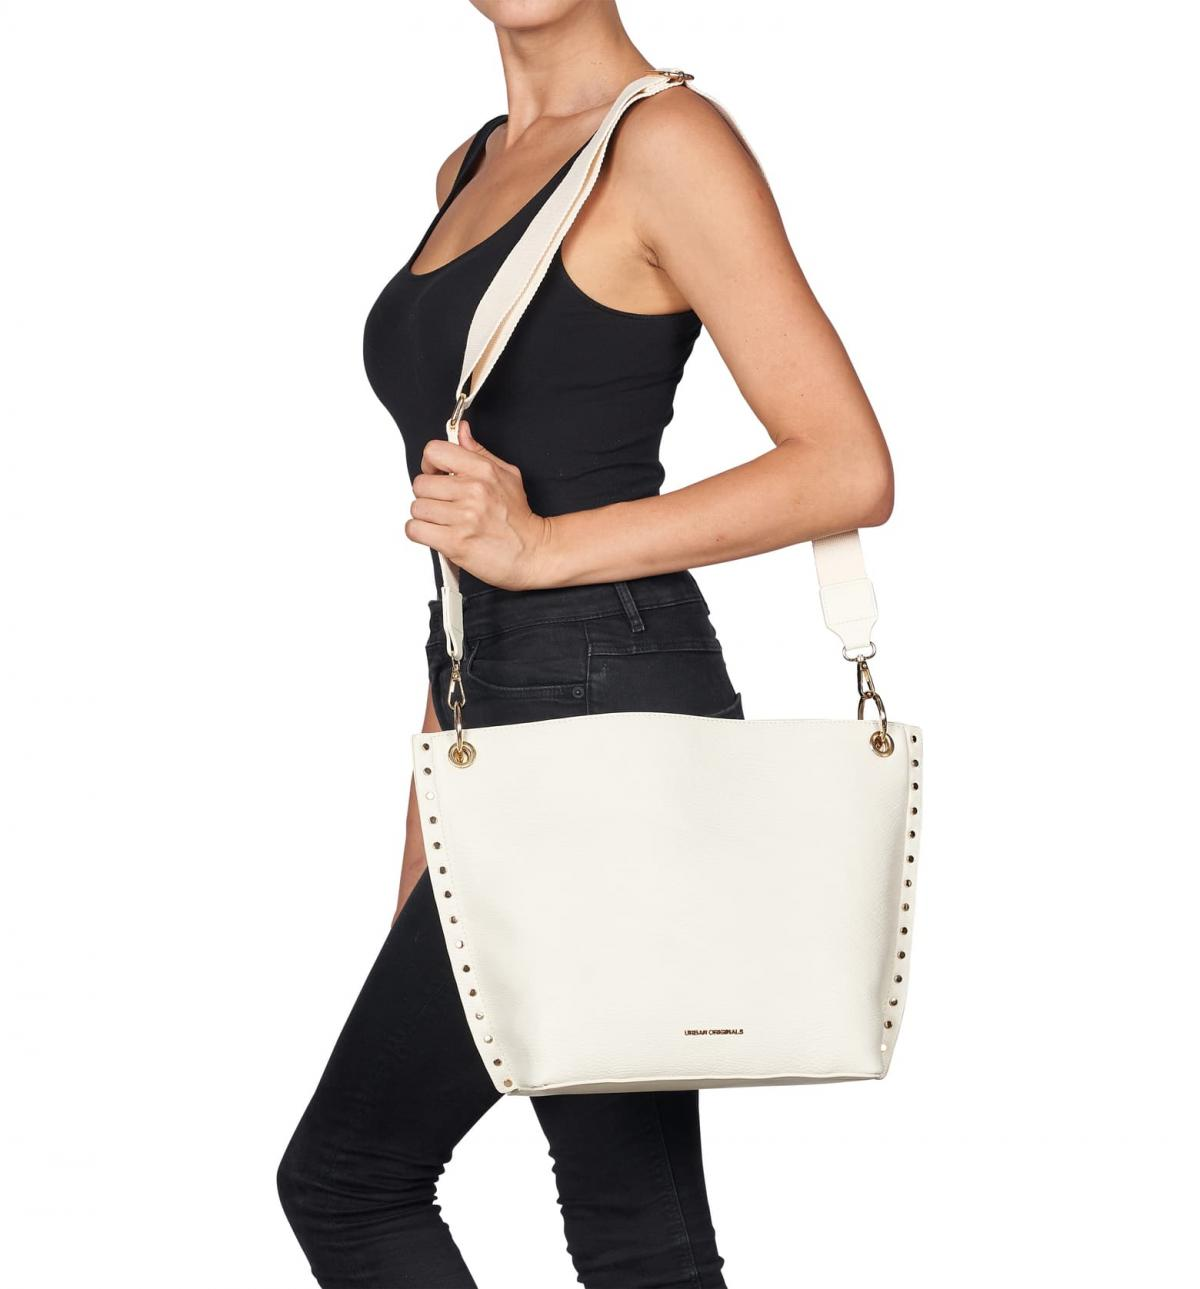 Incredibly stylish, fashionable and beautiful women's handbags for special occasions and for every day.